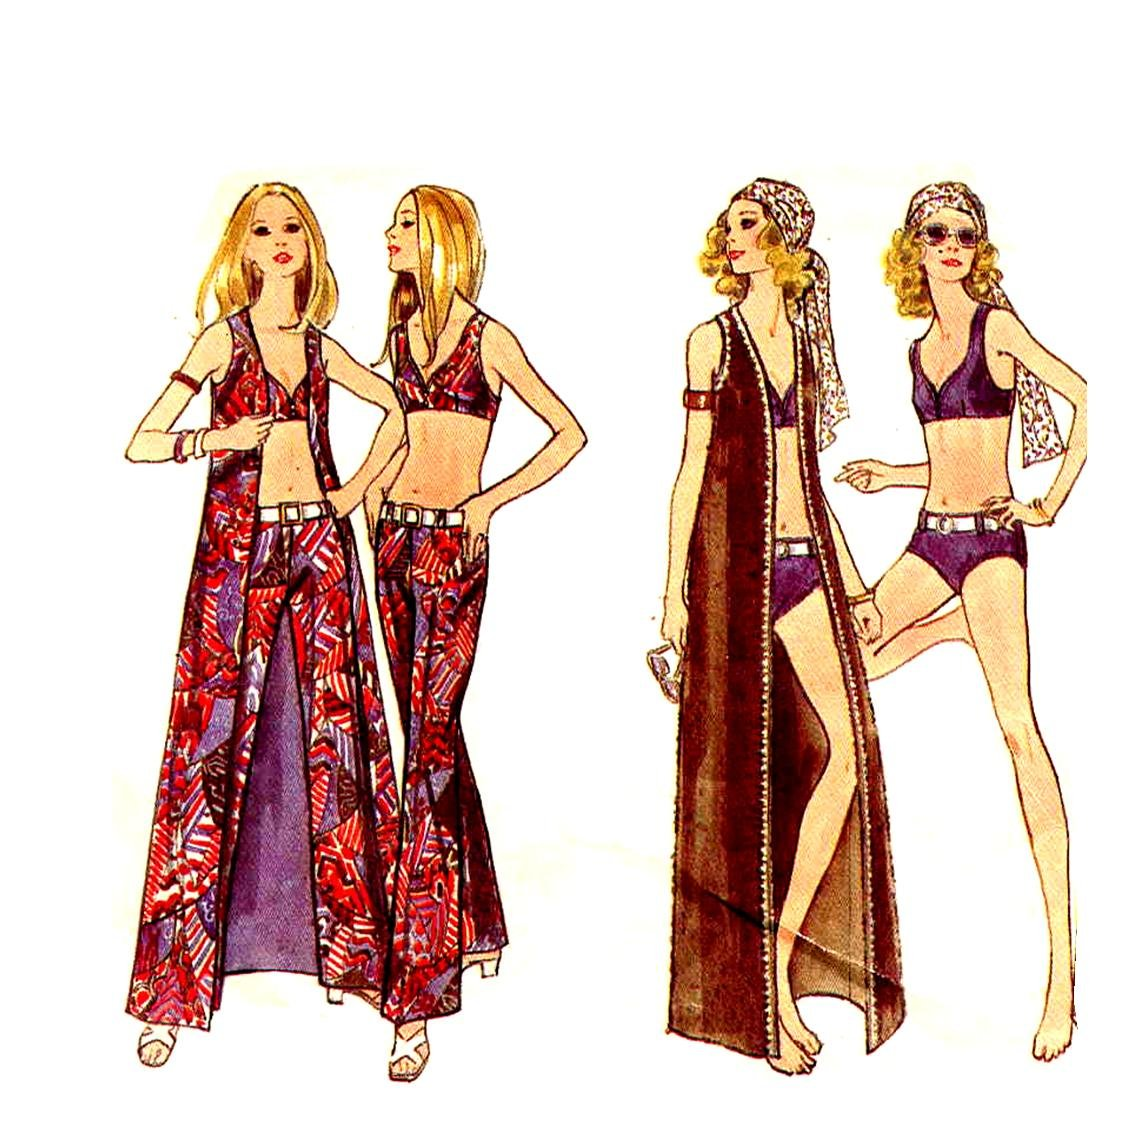 So Mod 60s Bikini and Maxi Vest Cover Up Butterick 5789 Vintage Pattern Bust 38